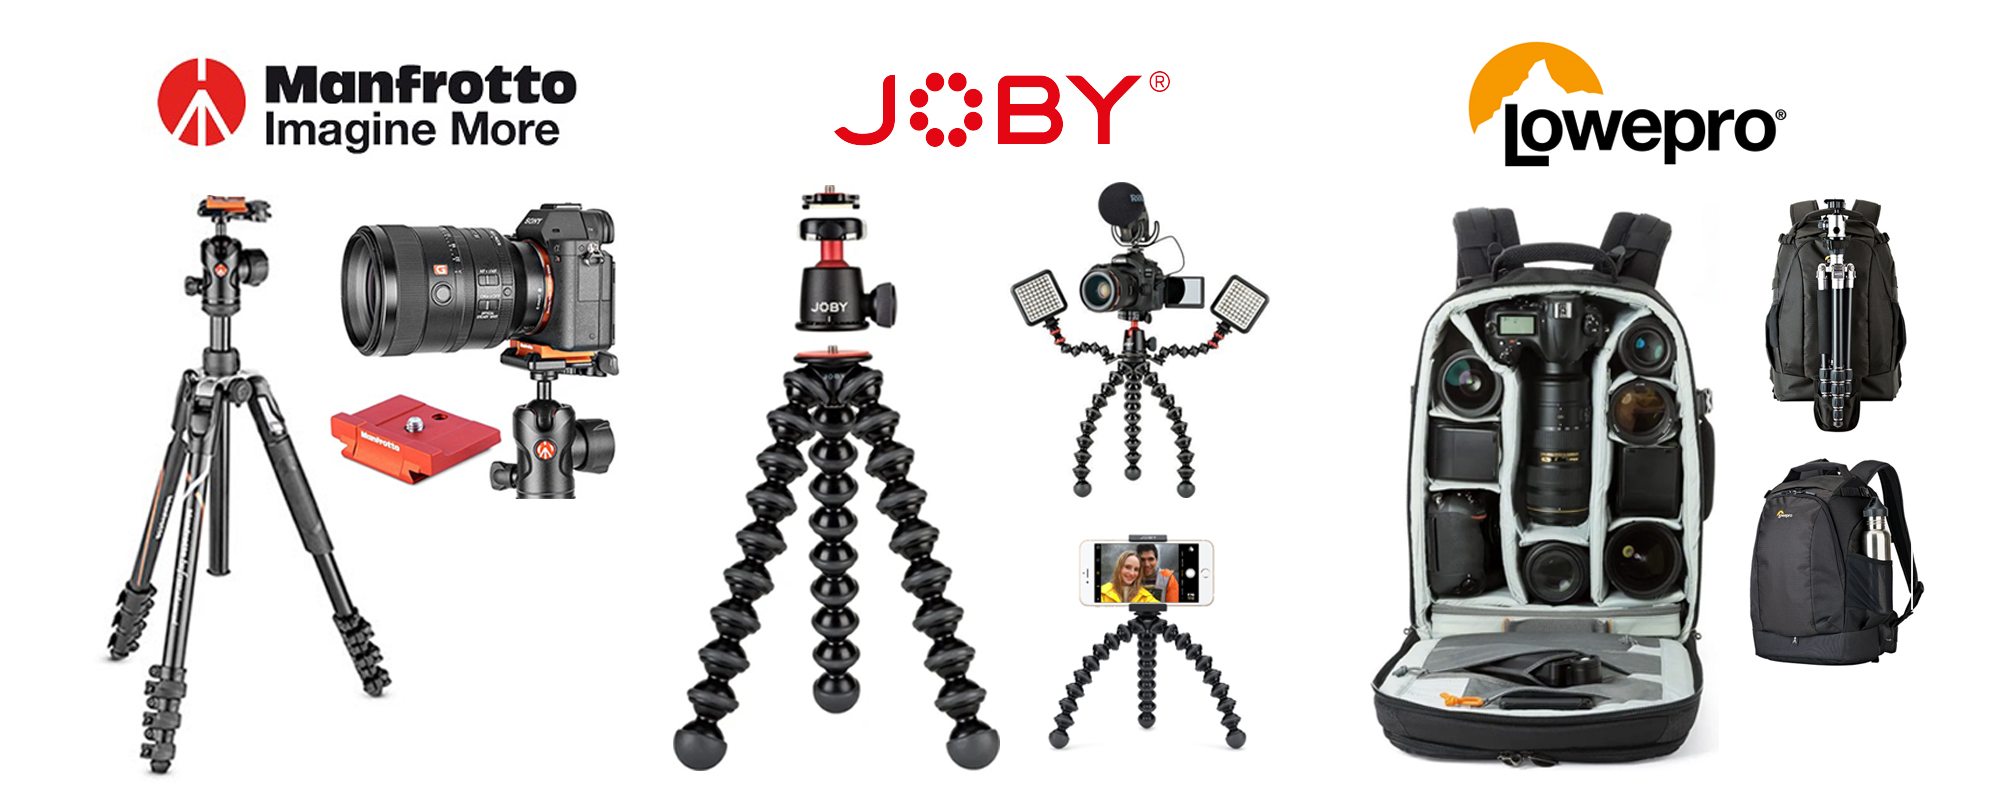 anfrotto-joby-lovepro